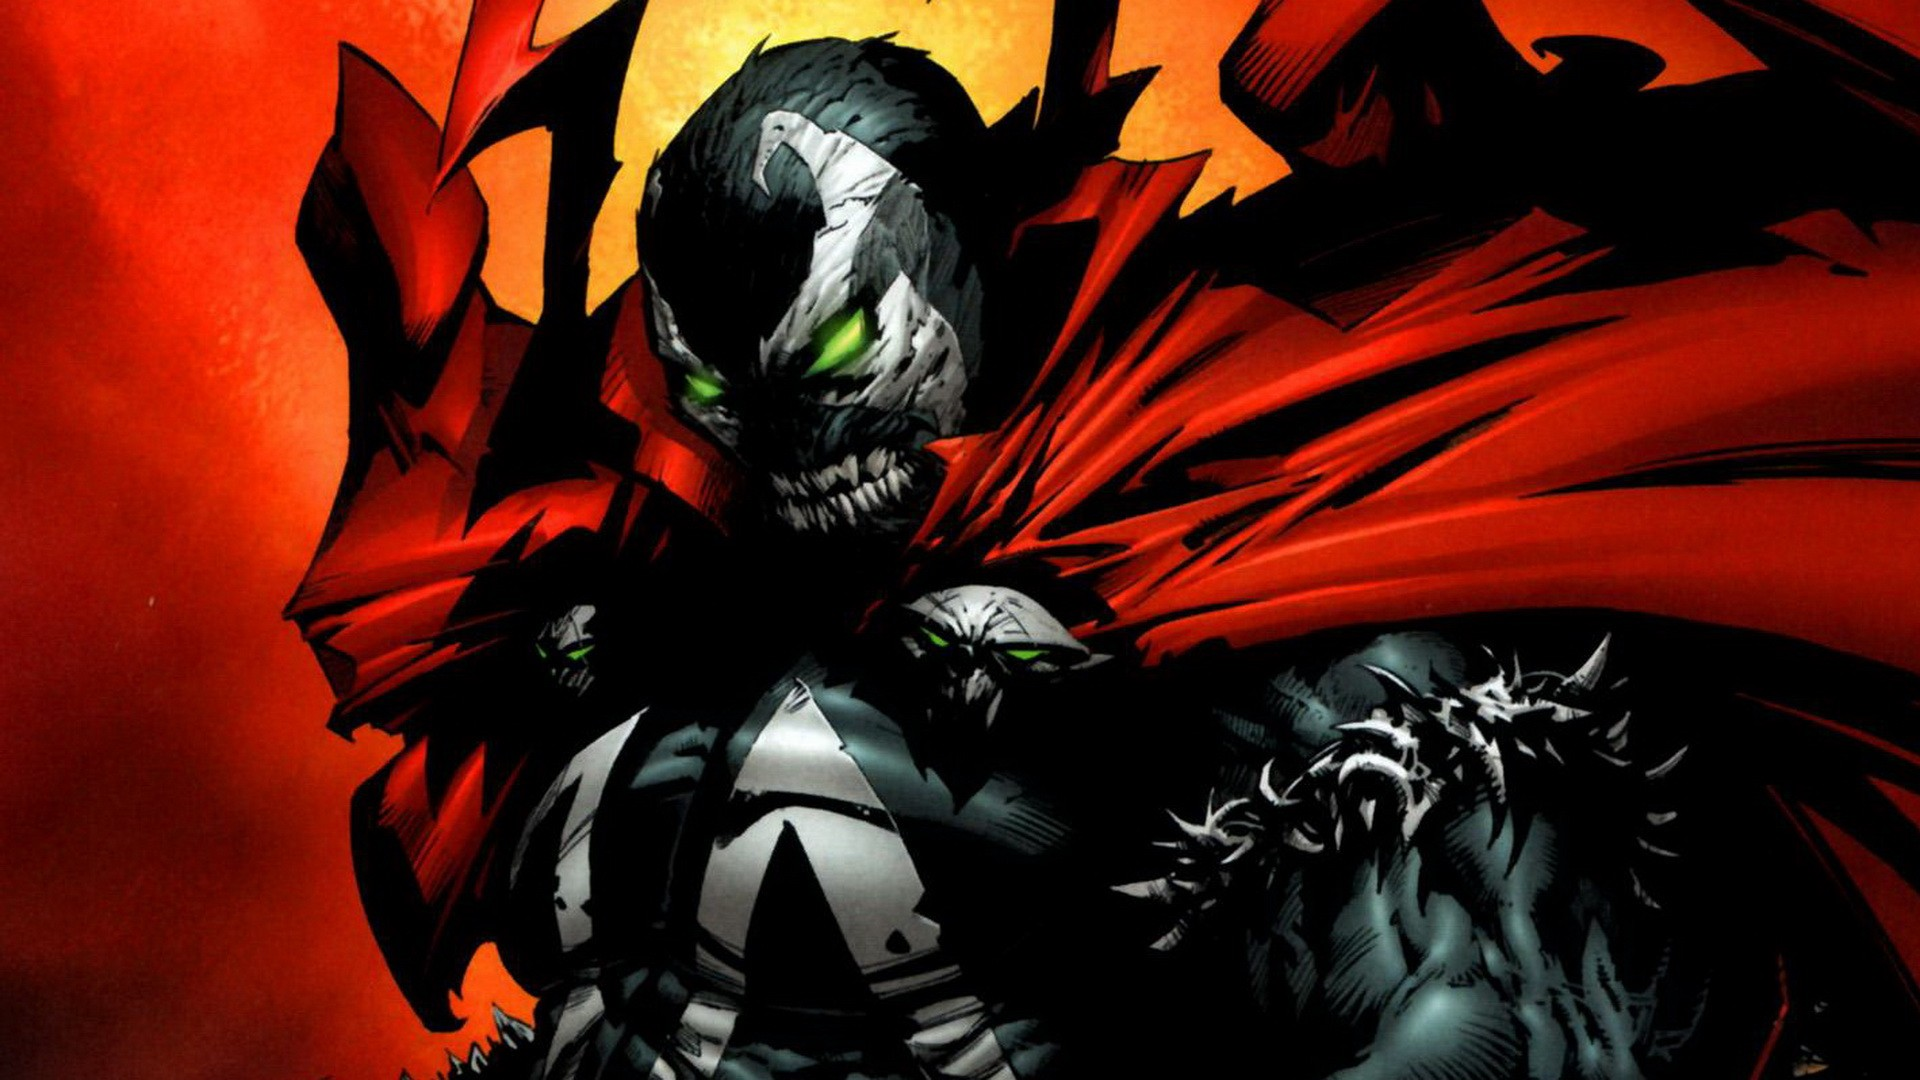 Spawn Computer Wallpapers, Desktop Backgrounds | 1920x1080 | ID:291892